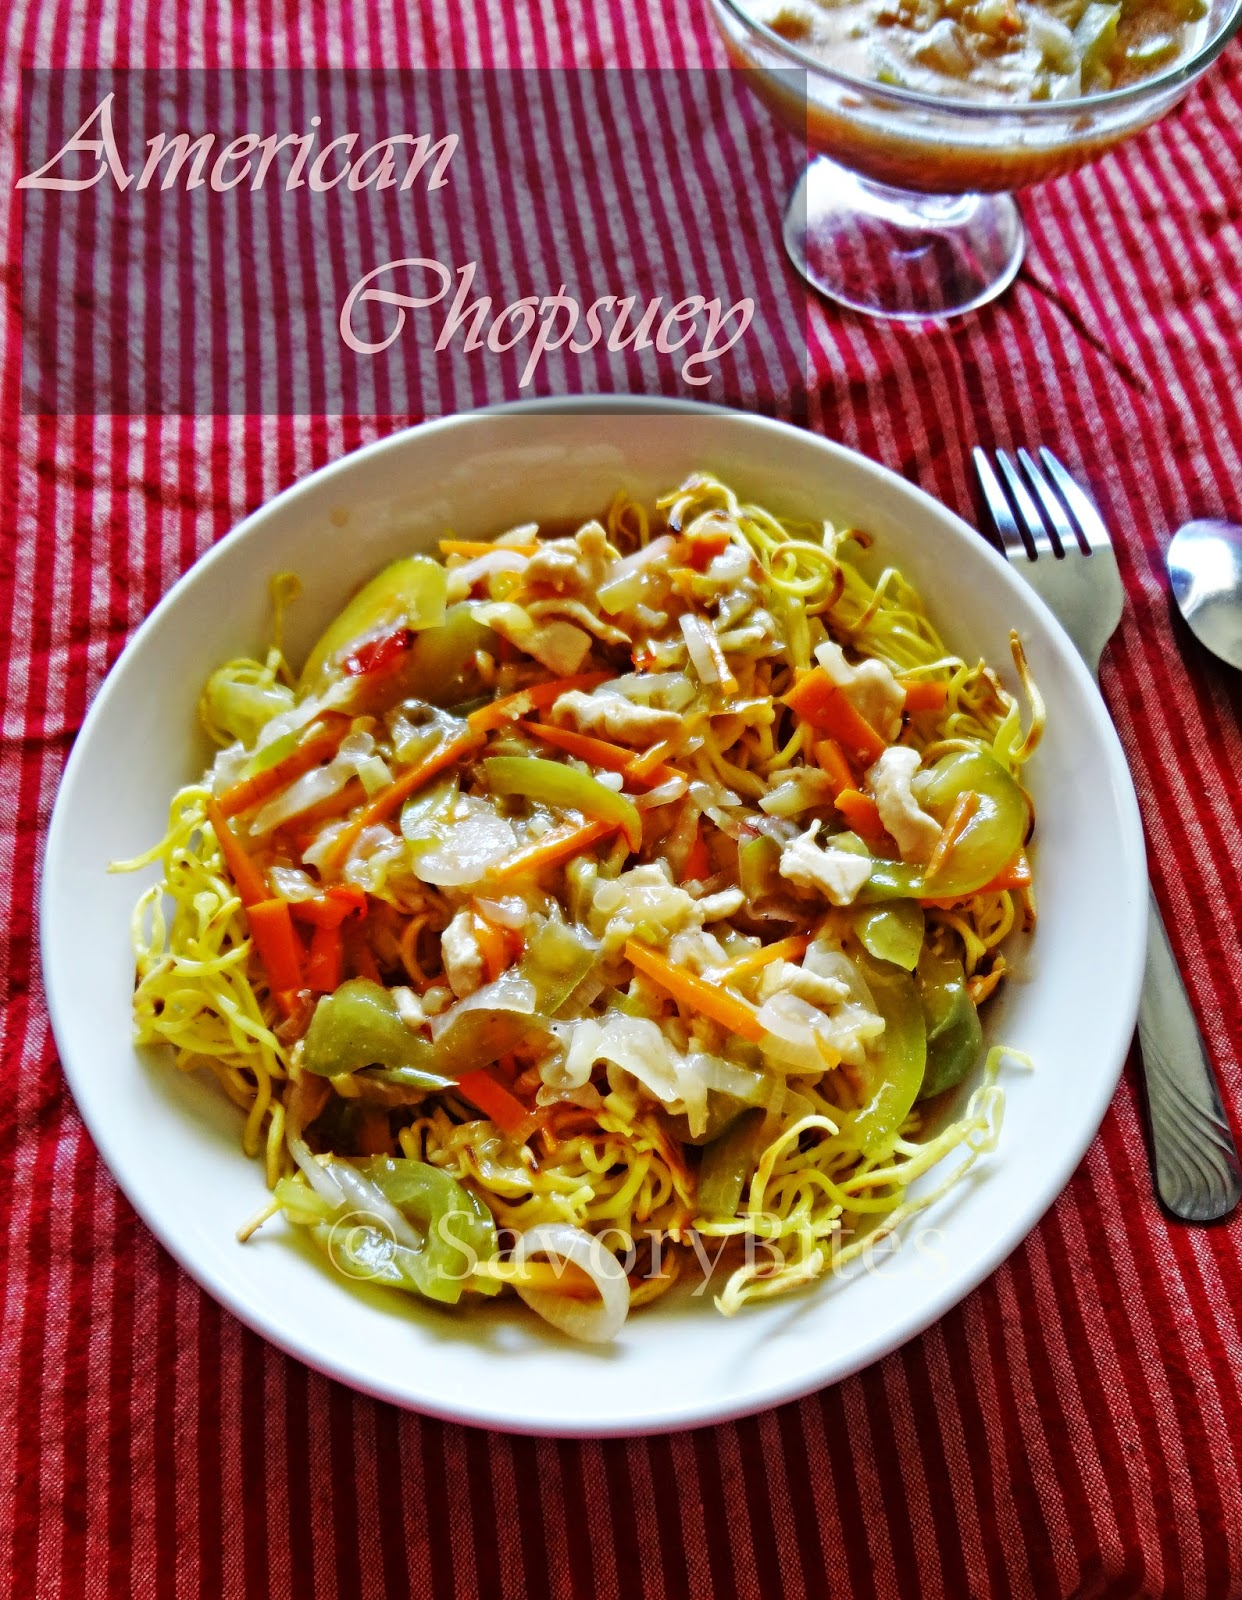 American Chopsuey Chowmein Noodles Indo Chinese Chicken Noodles